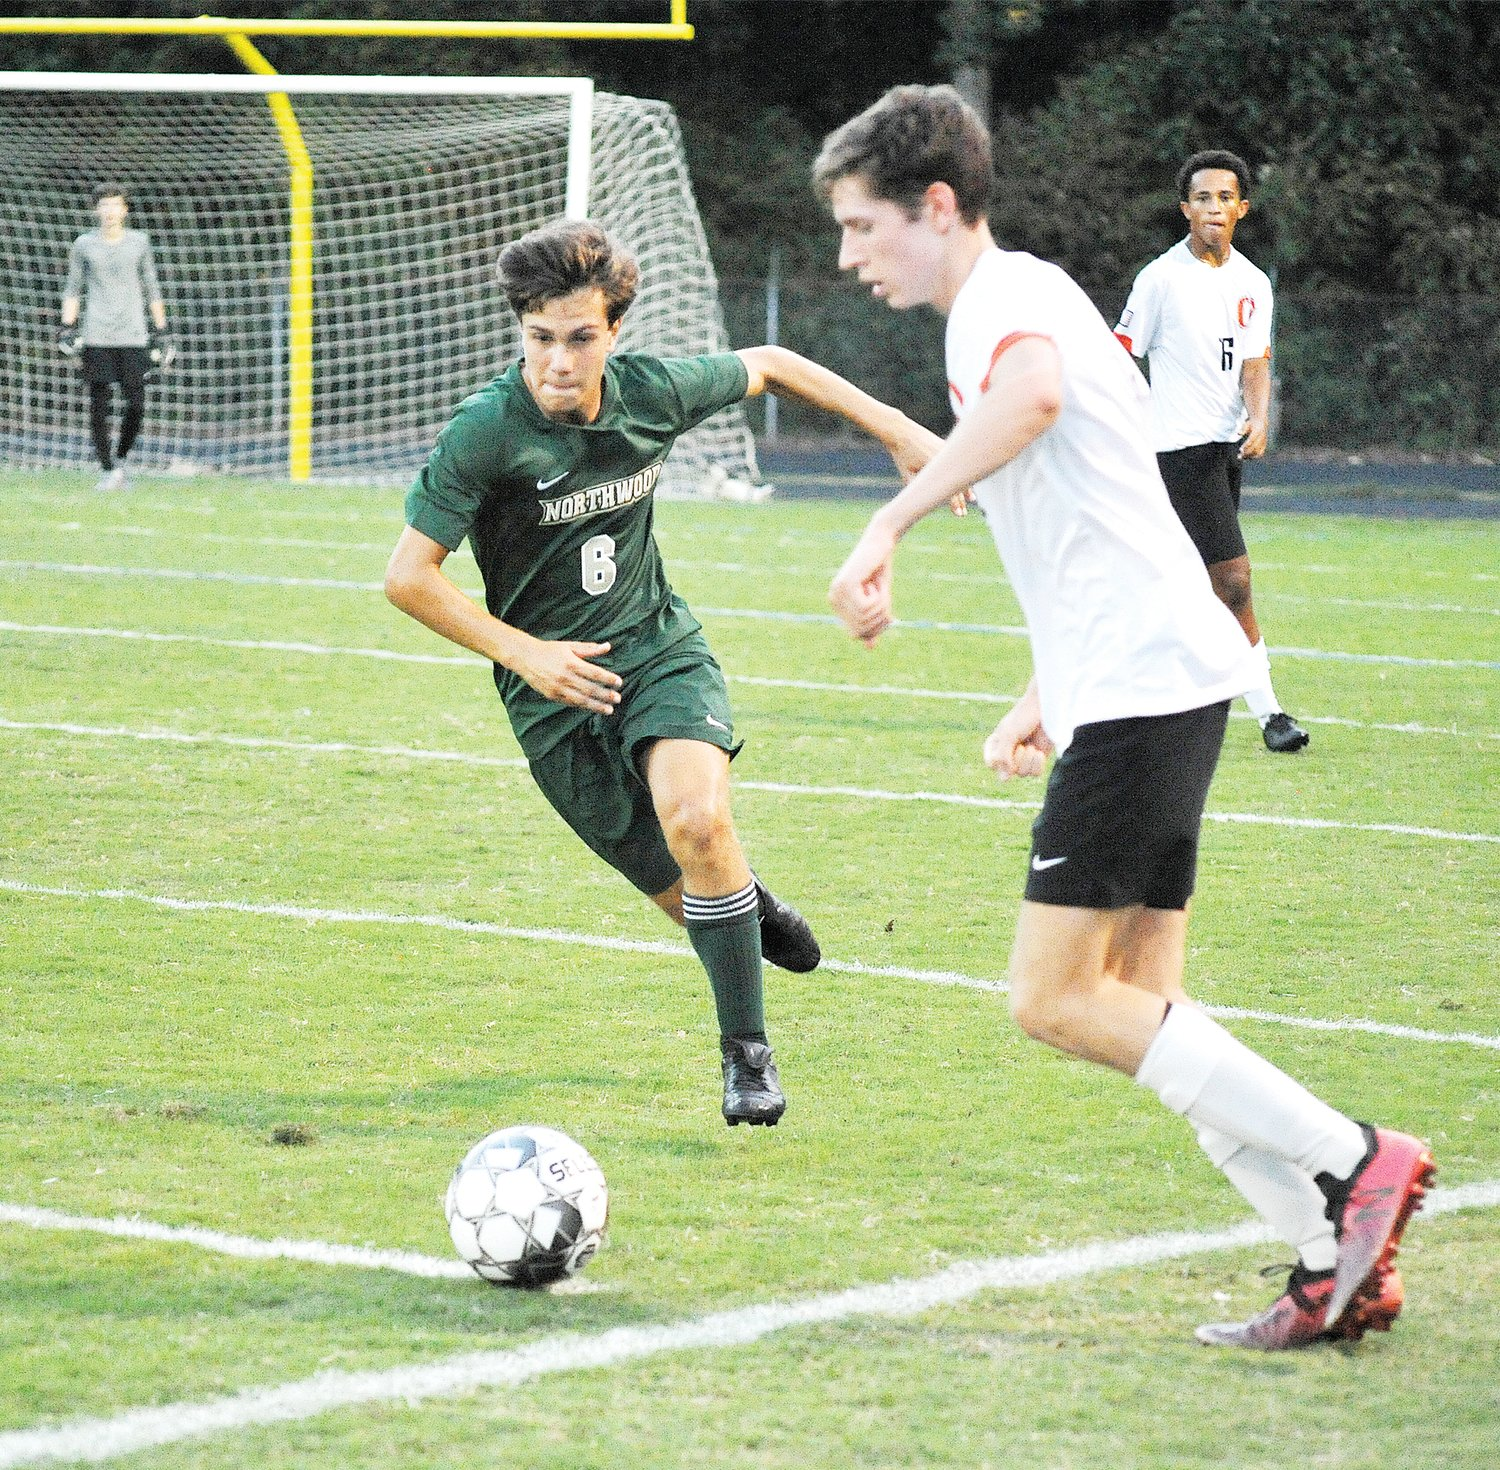 Determination!.Northwoods' Gino Valenti takes the ball past Orange Highs' Luke Phillips in their Sept. 23rd game as Kobe Thompson watches. The home field advantage added to the score with Northwood victorious in the match, 2-1.